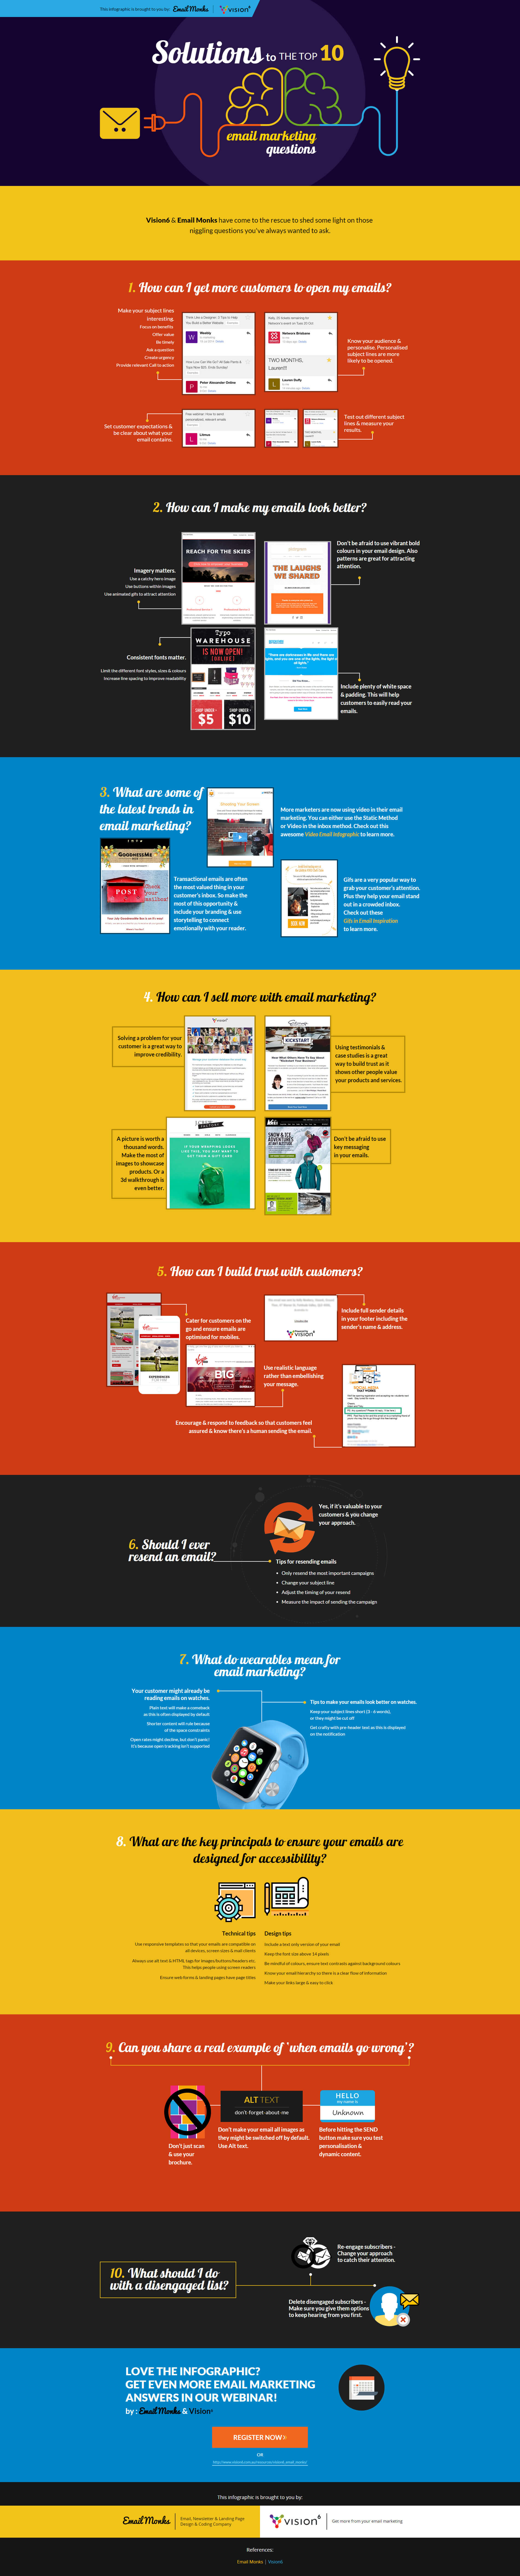 solutions-to-top-10-email-marketing-questions-infographic